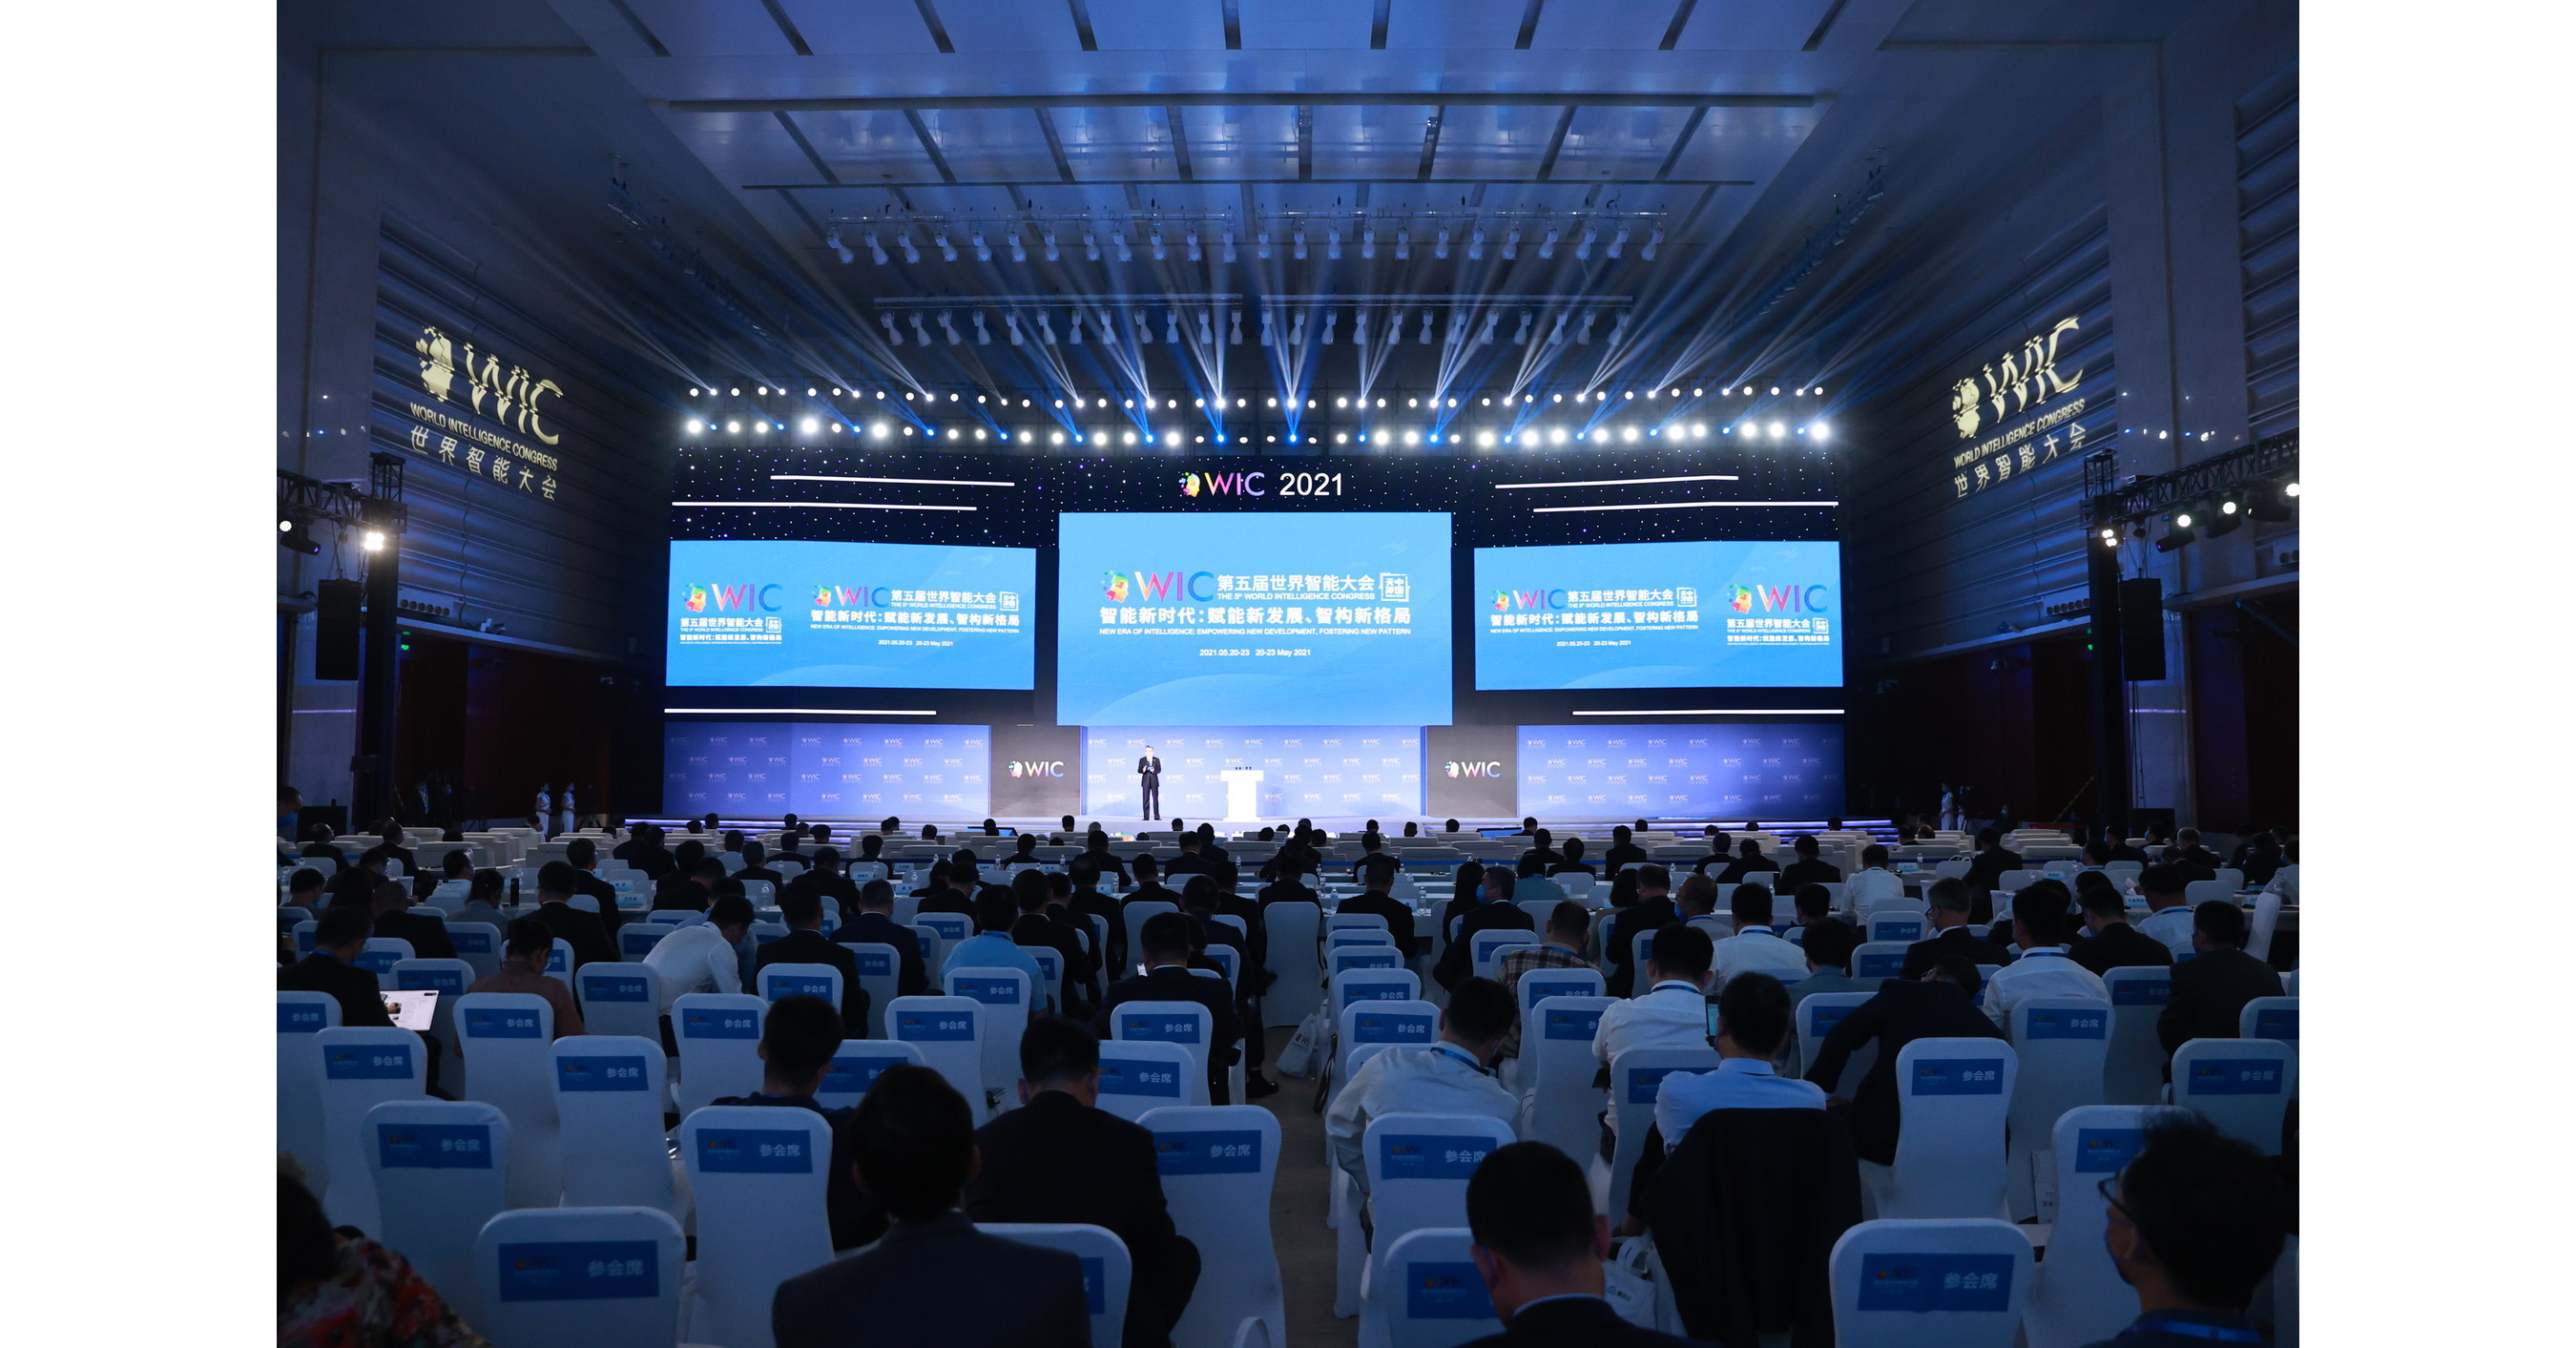 The fifth WIC begins in Tianjin with dazzling state-of-the-art technology | ExBulletin